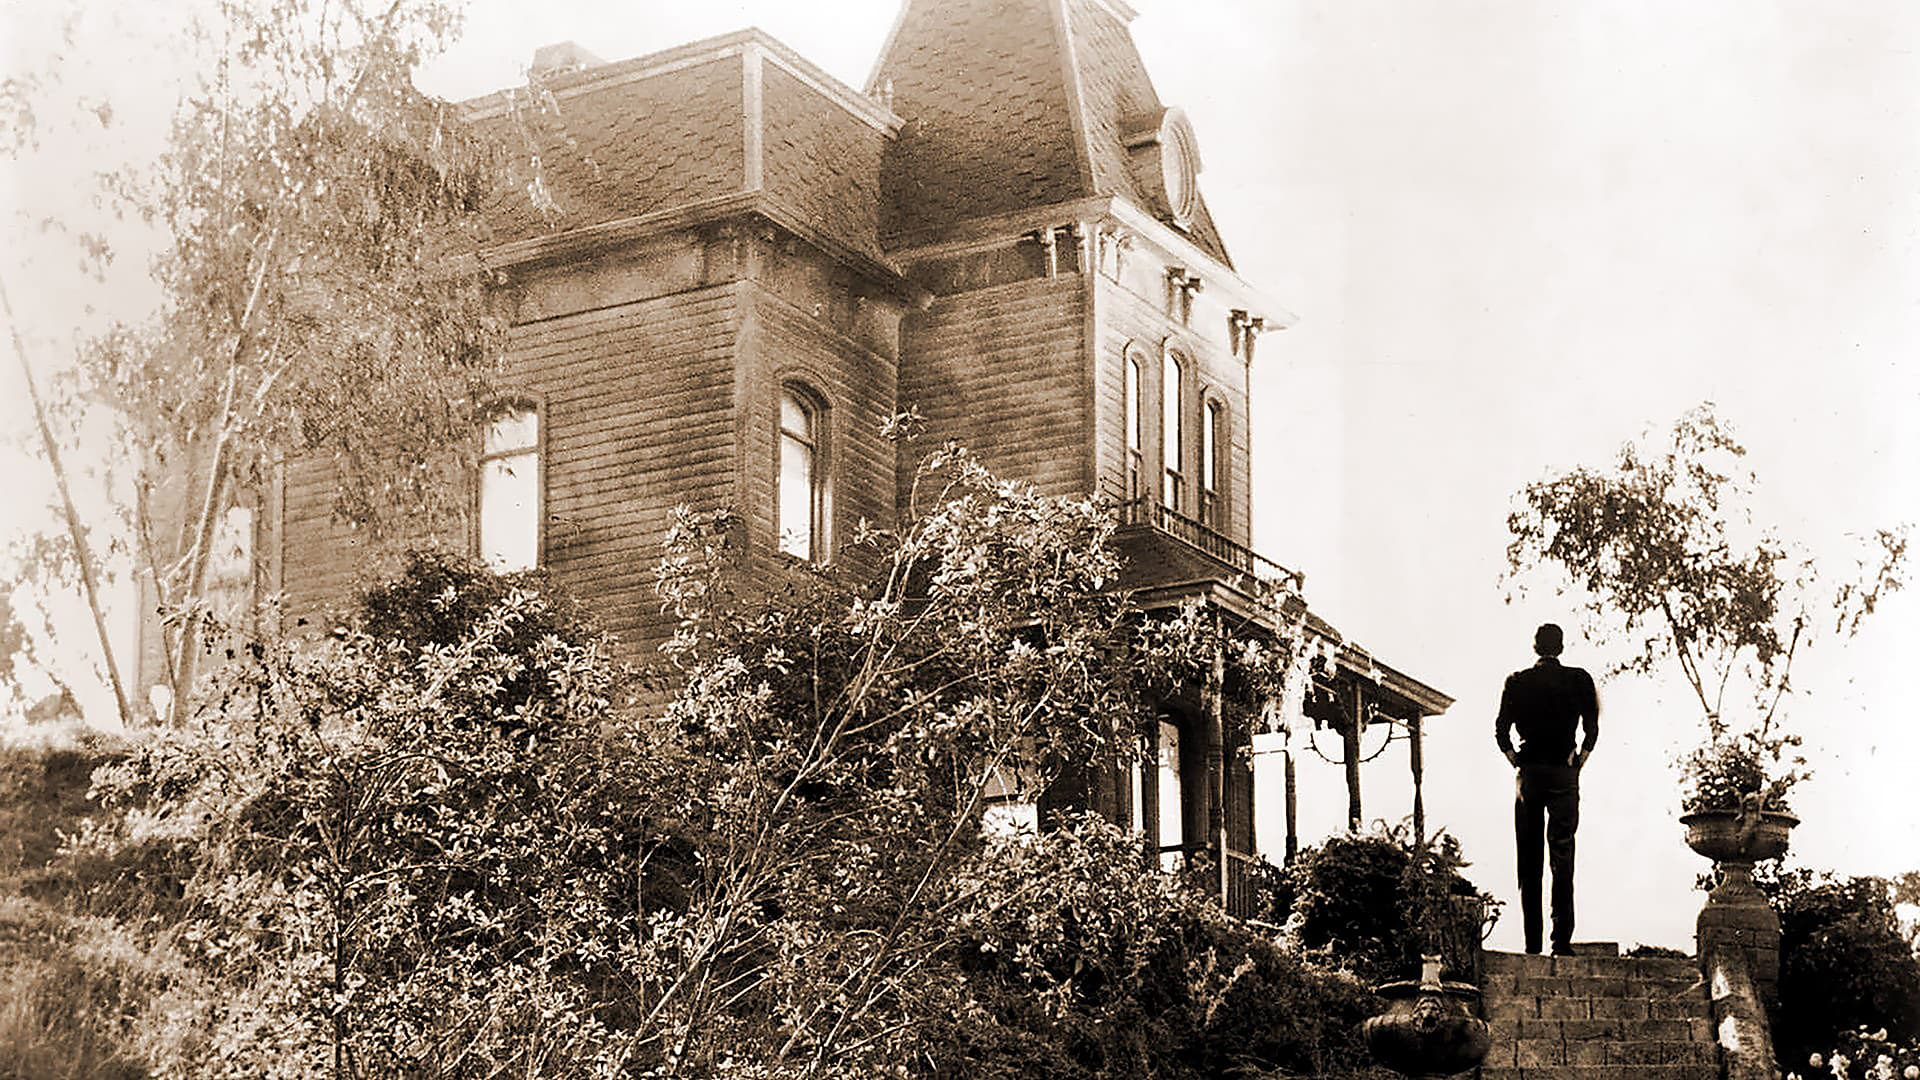 Psycho House and Norman Bates